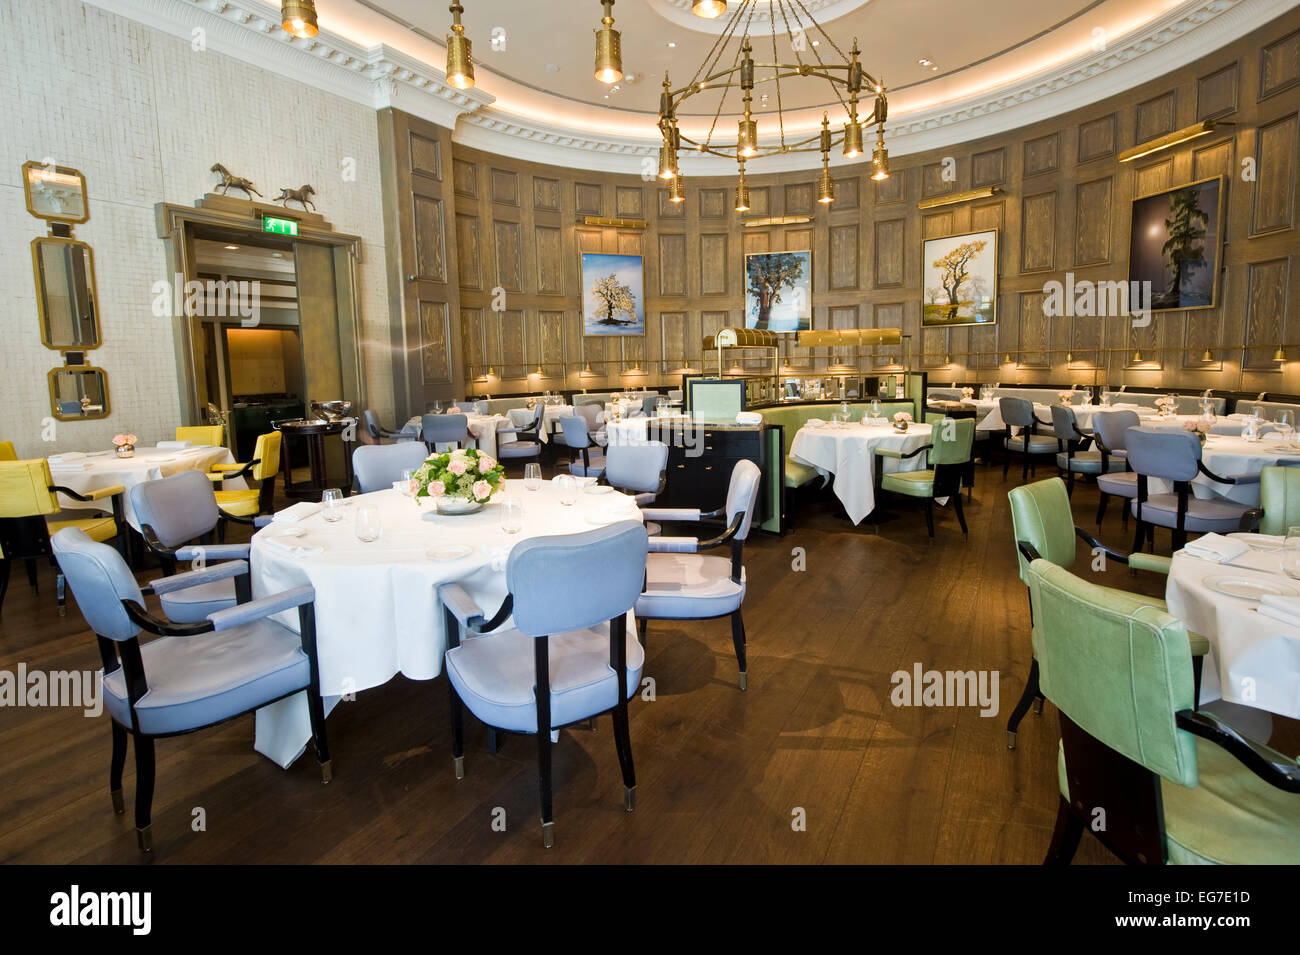 Interior Shot Of The Langham Hotel In London, One Of The Finest Five Star  Hotels